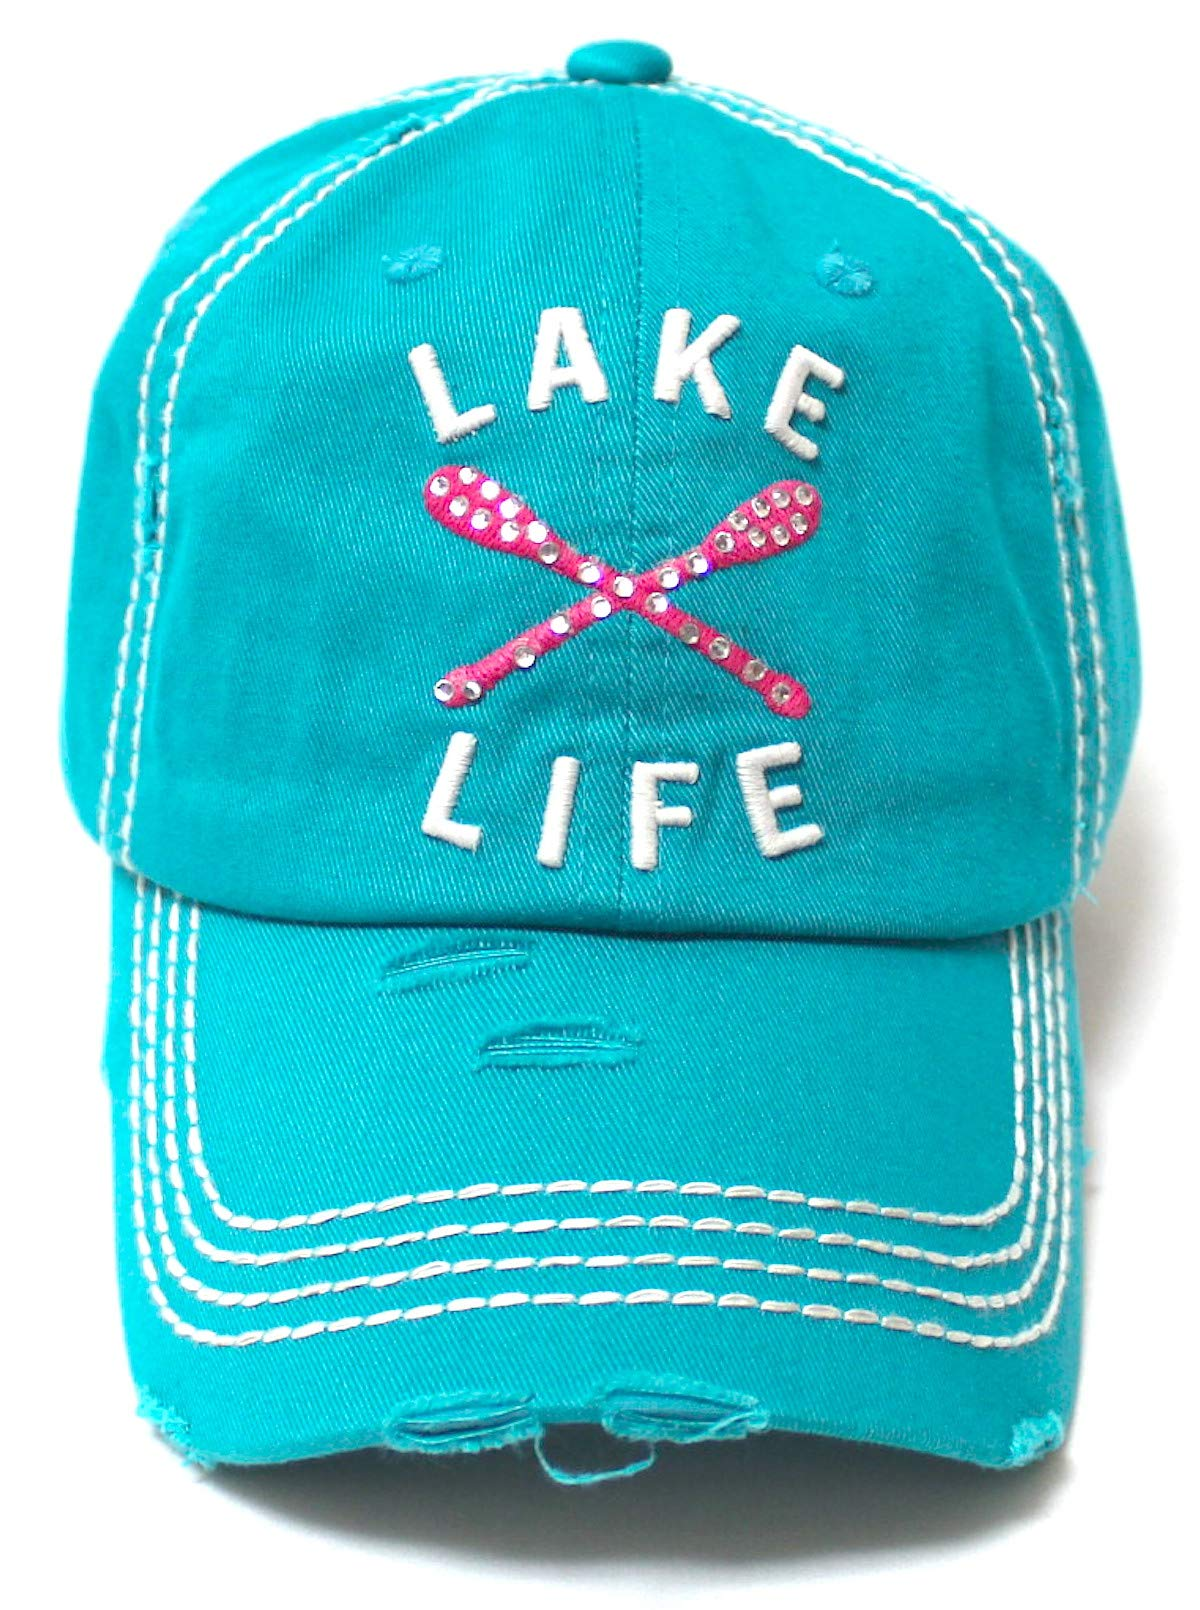 Women's Vintage Beach Cap Lake Life Pink Paddles Monogram Embroidery Hat, Turquoise - Caps 'N Vintage